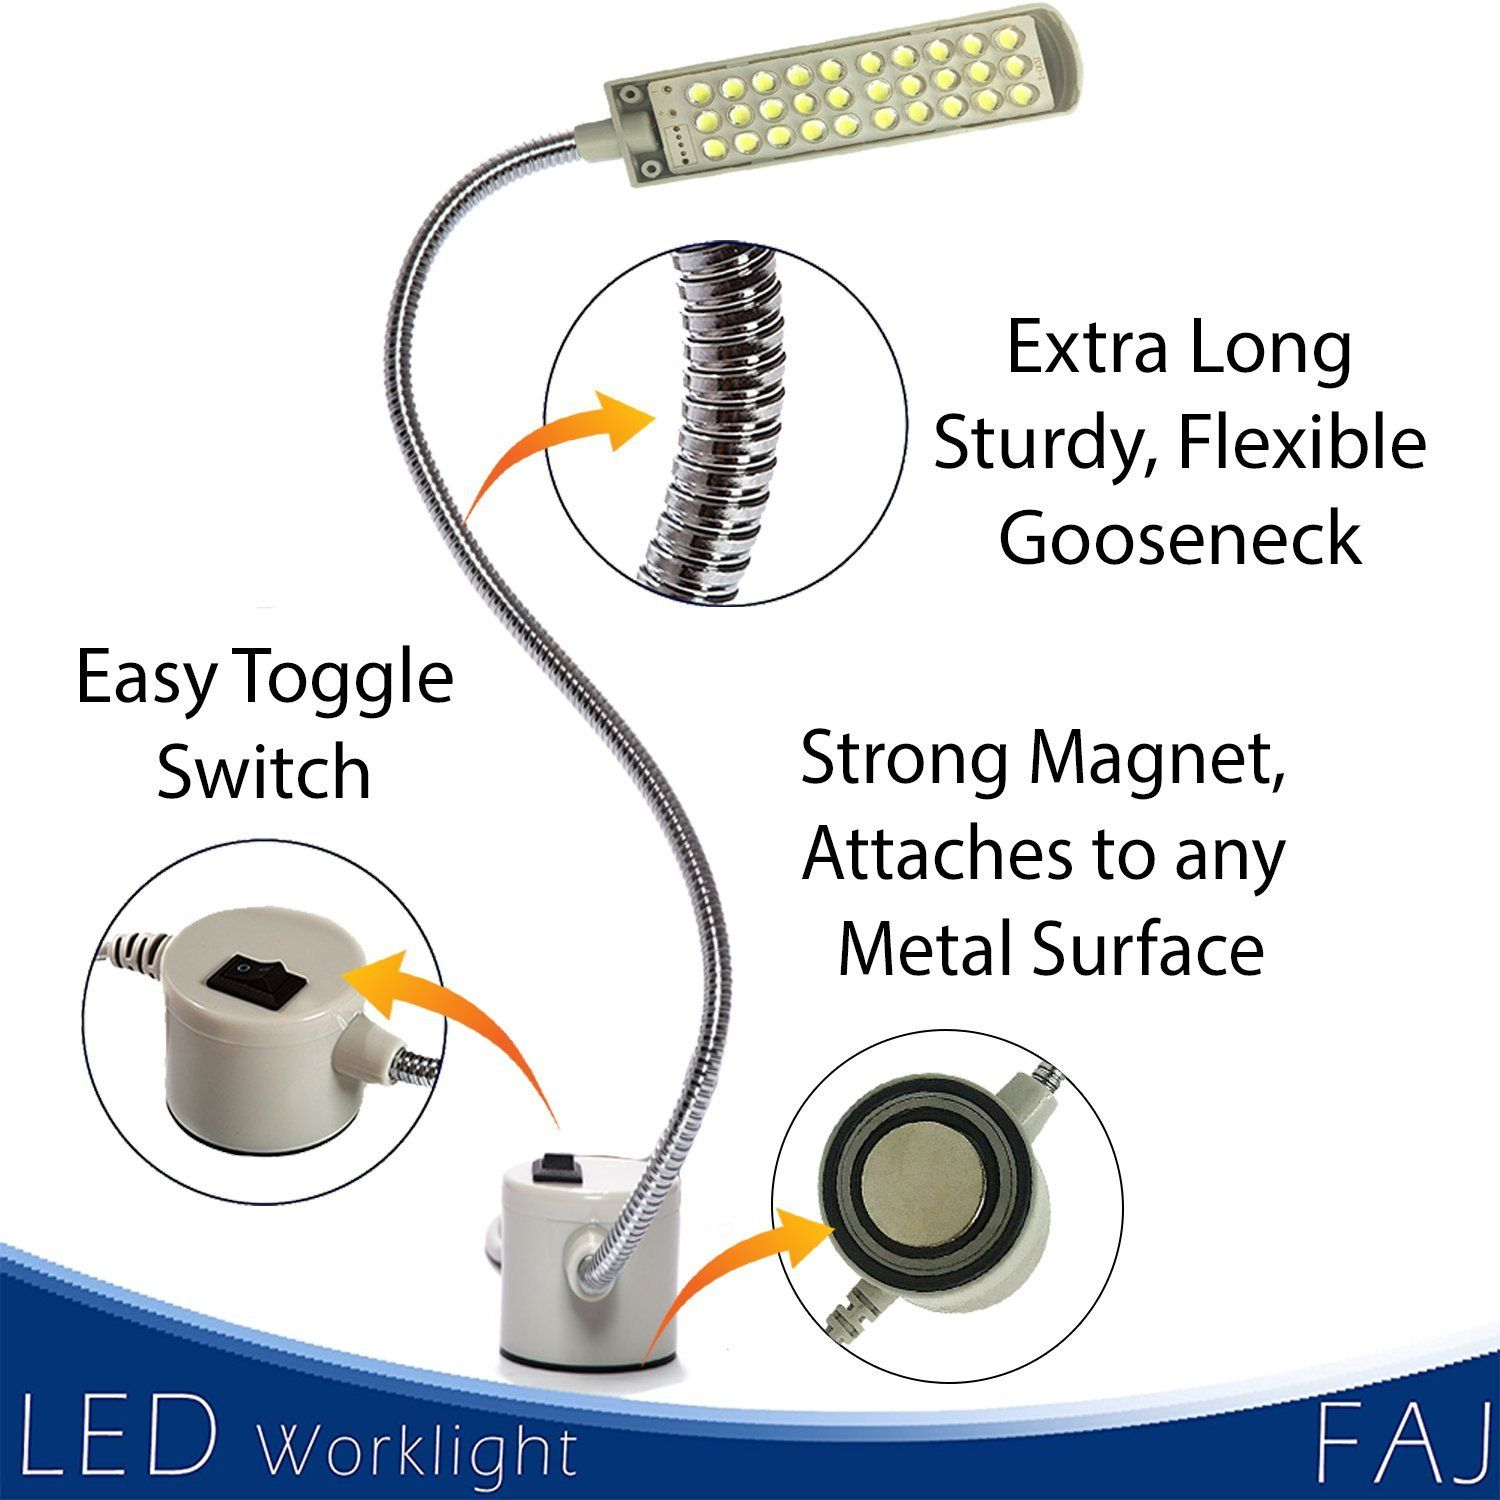 Faj Magnetic 12inches Extra Long Flexible Gooseneck Arm Multifunctional Worklight Bright Daylight Leds Sewing Machin Craft Lights Woodworking Tools Flexibility